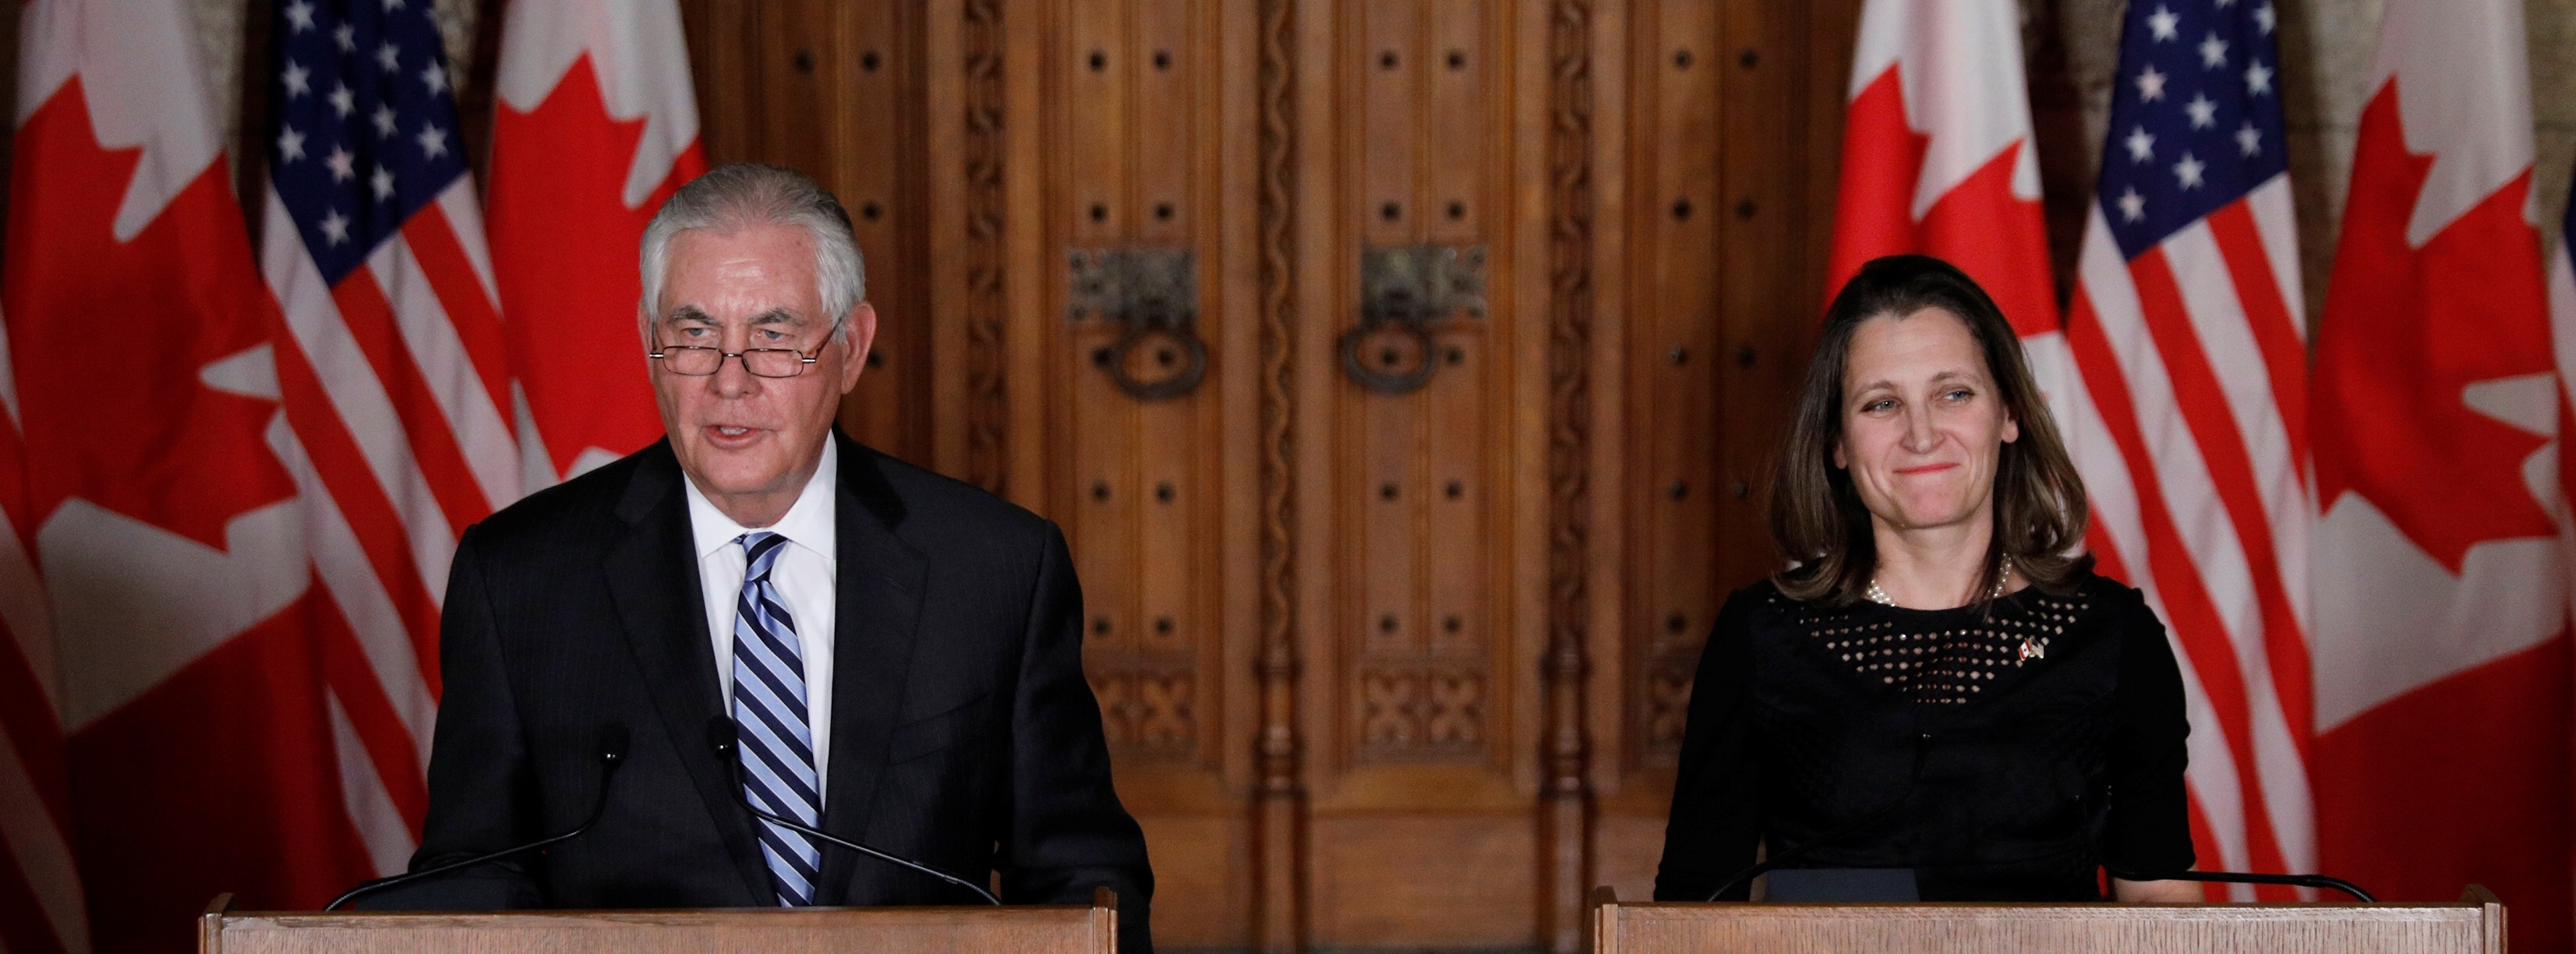 U.S. Secretary of State Rex Tillerson (L) and Canada's Foreign Minister Chrystia Freeland take part in a news conference on Parliament Hill in Ottawa, Ontario, Canada, December 19, 2017. REUTERS/Blair Gable - RC122CAB46E0